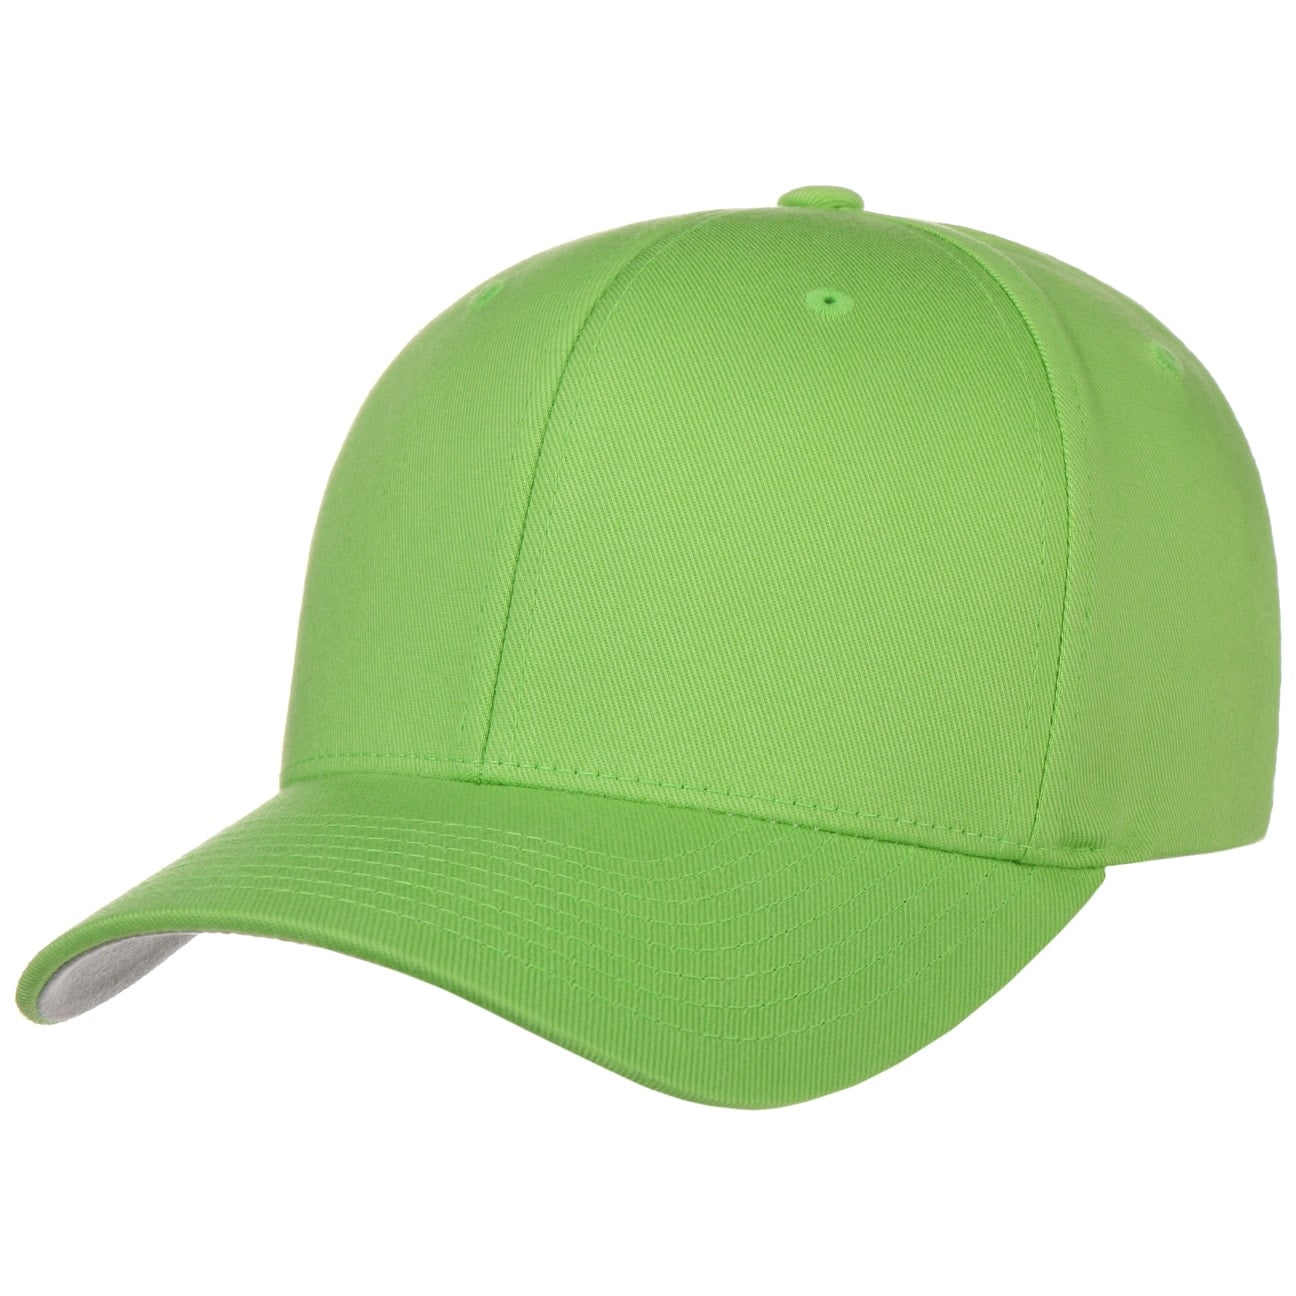 ... Spandex Flexfit Cap - light green 2 ... 26da39dc643